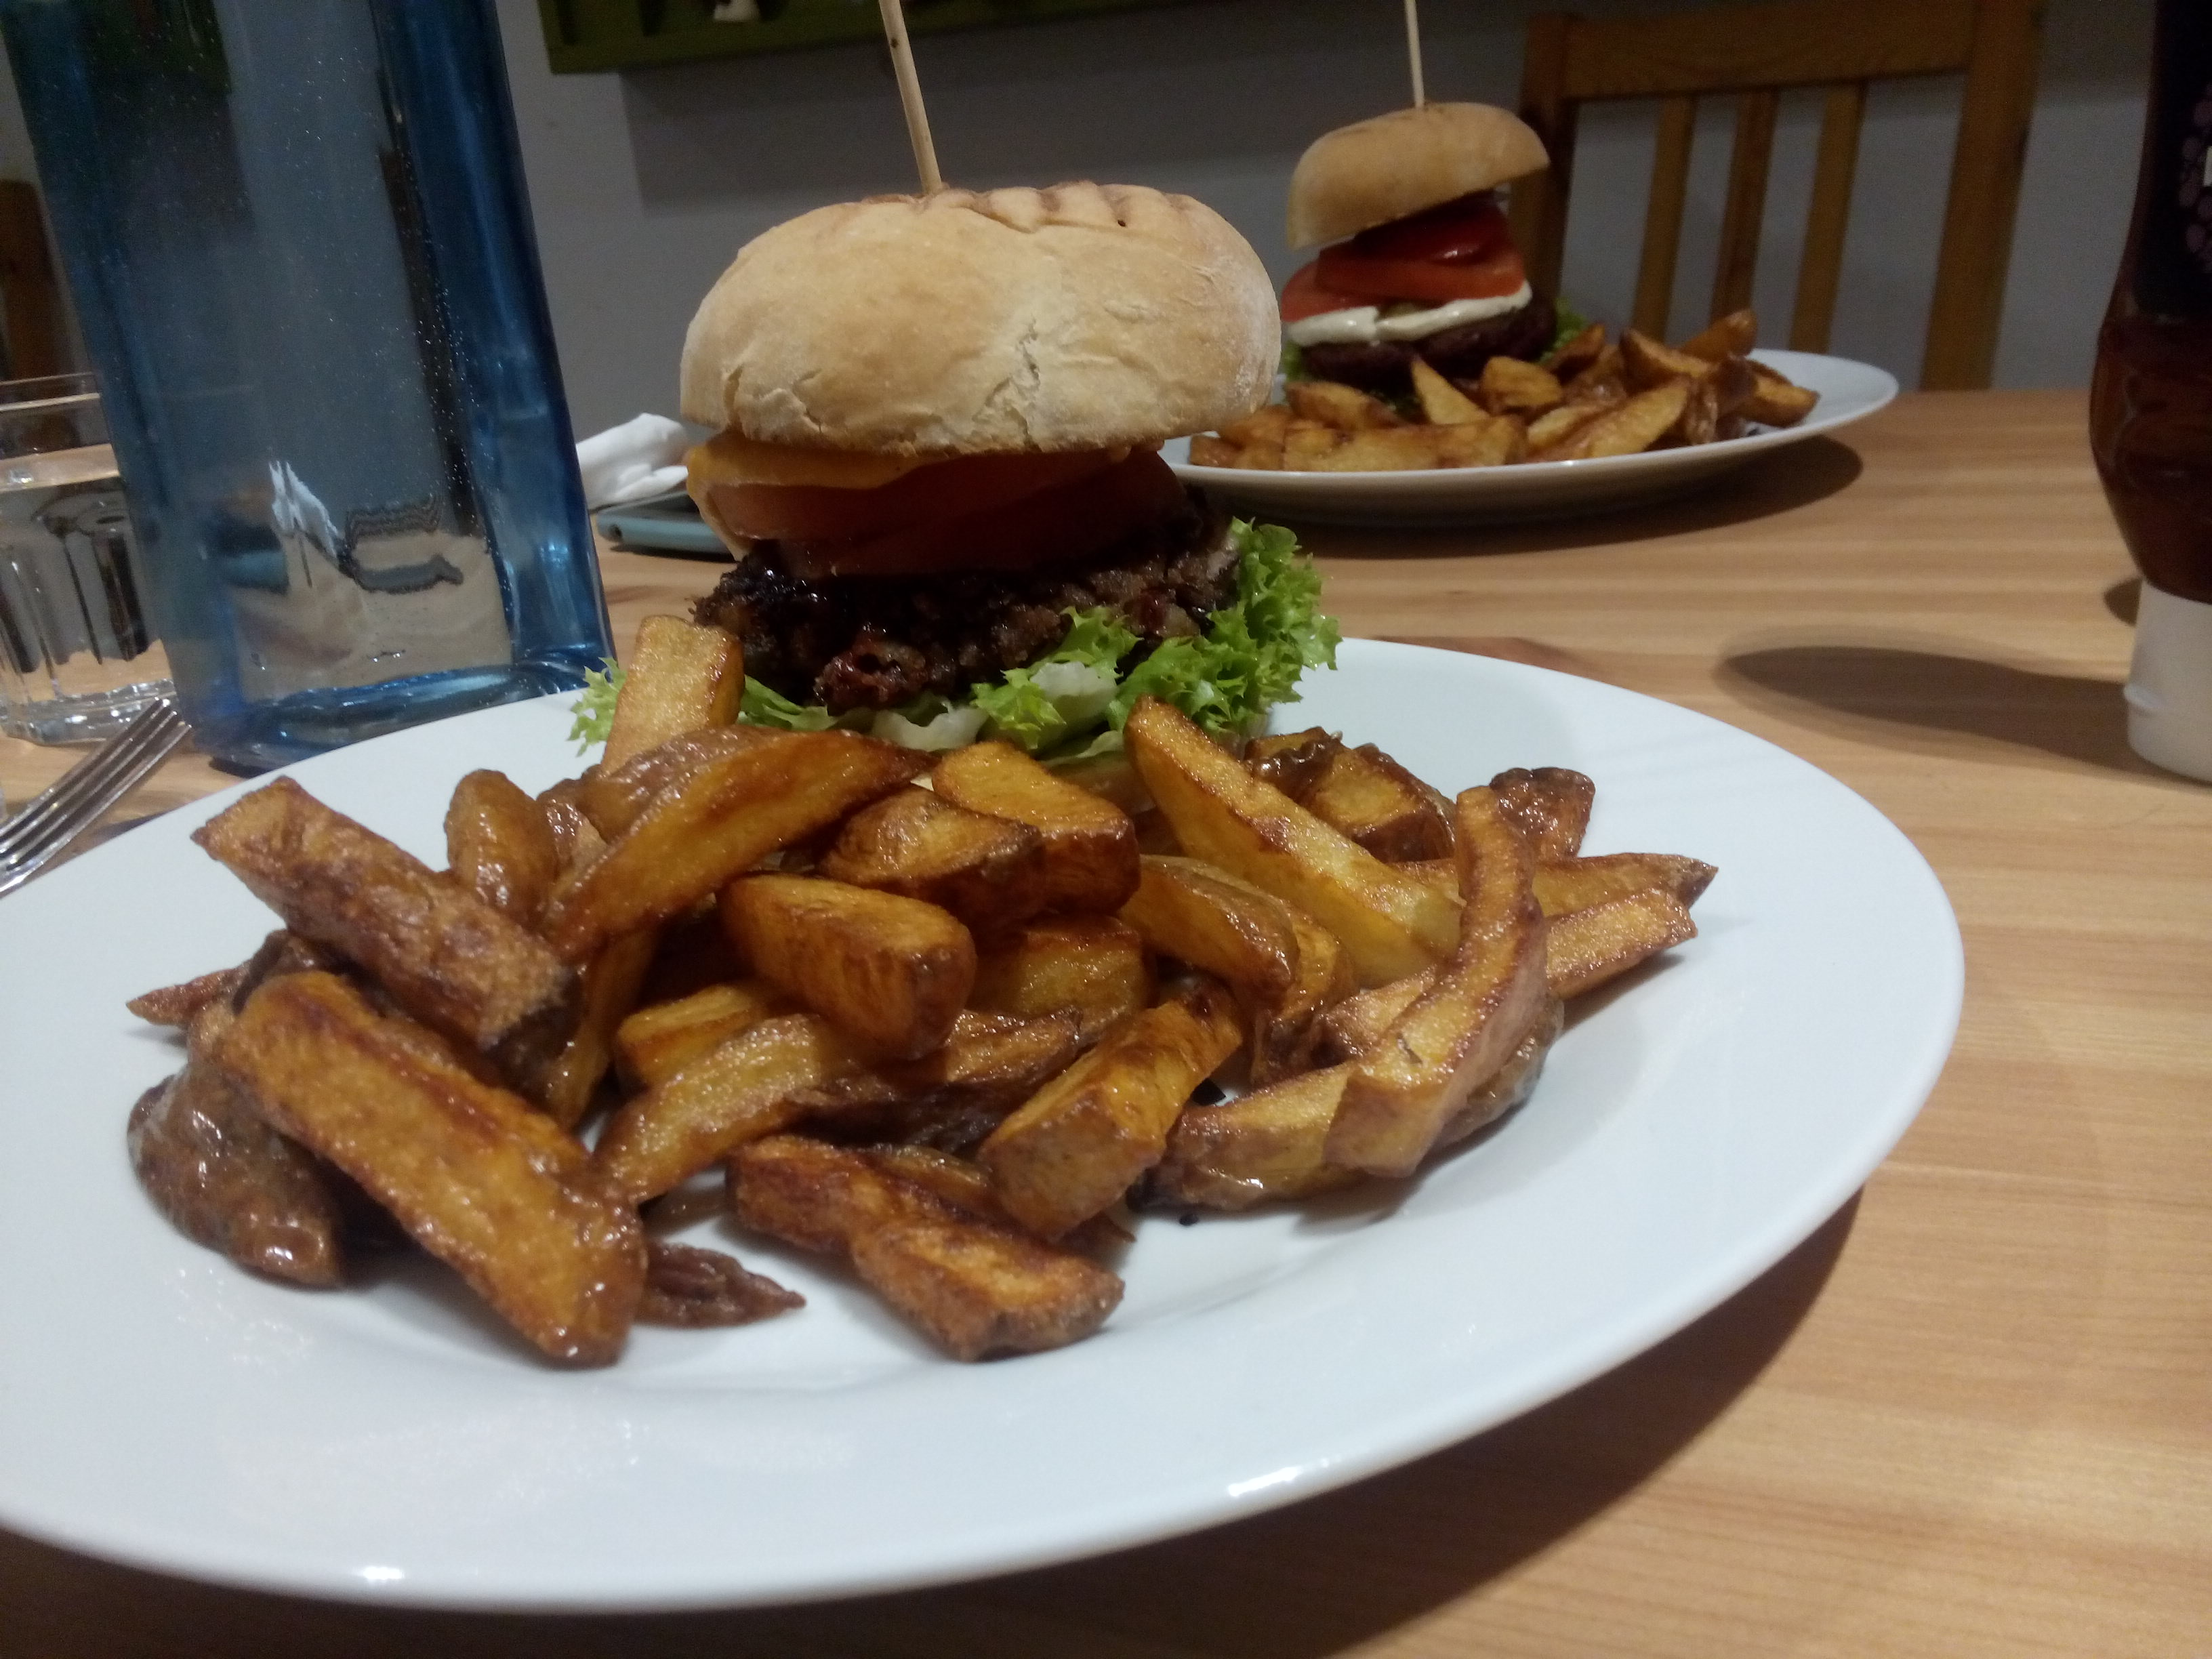 A towering burger in the foreground on a white plate, accompanied by chips. A similiar one in the background